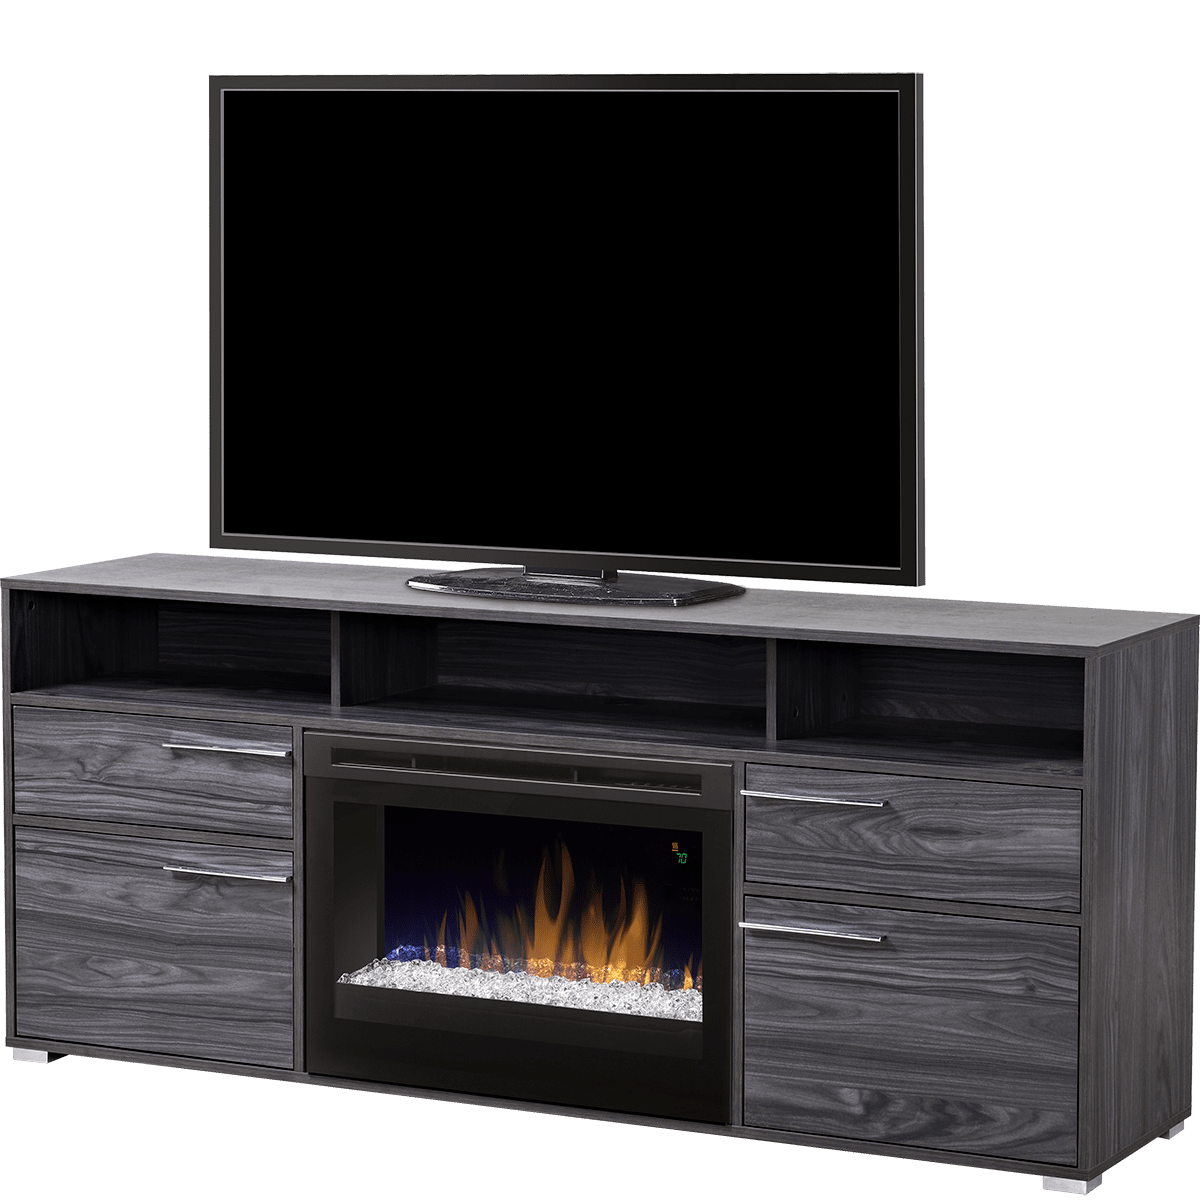 Wondrous Dimplex Sander Electric Fireplace Tv Stand Download Free Architecture Designs Estepponolmadebymaigaardcom